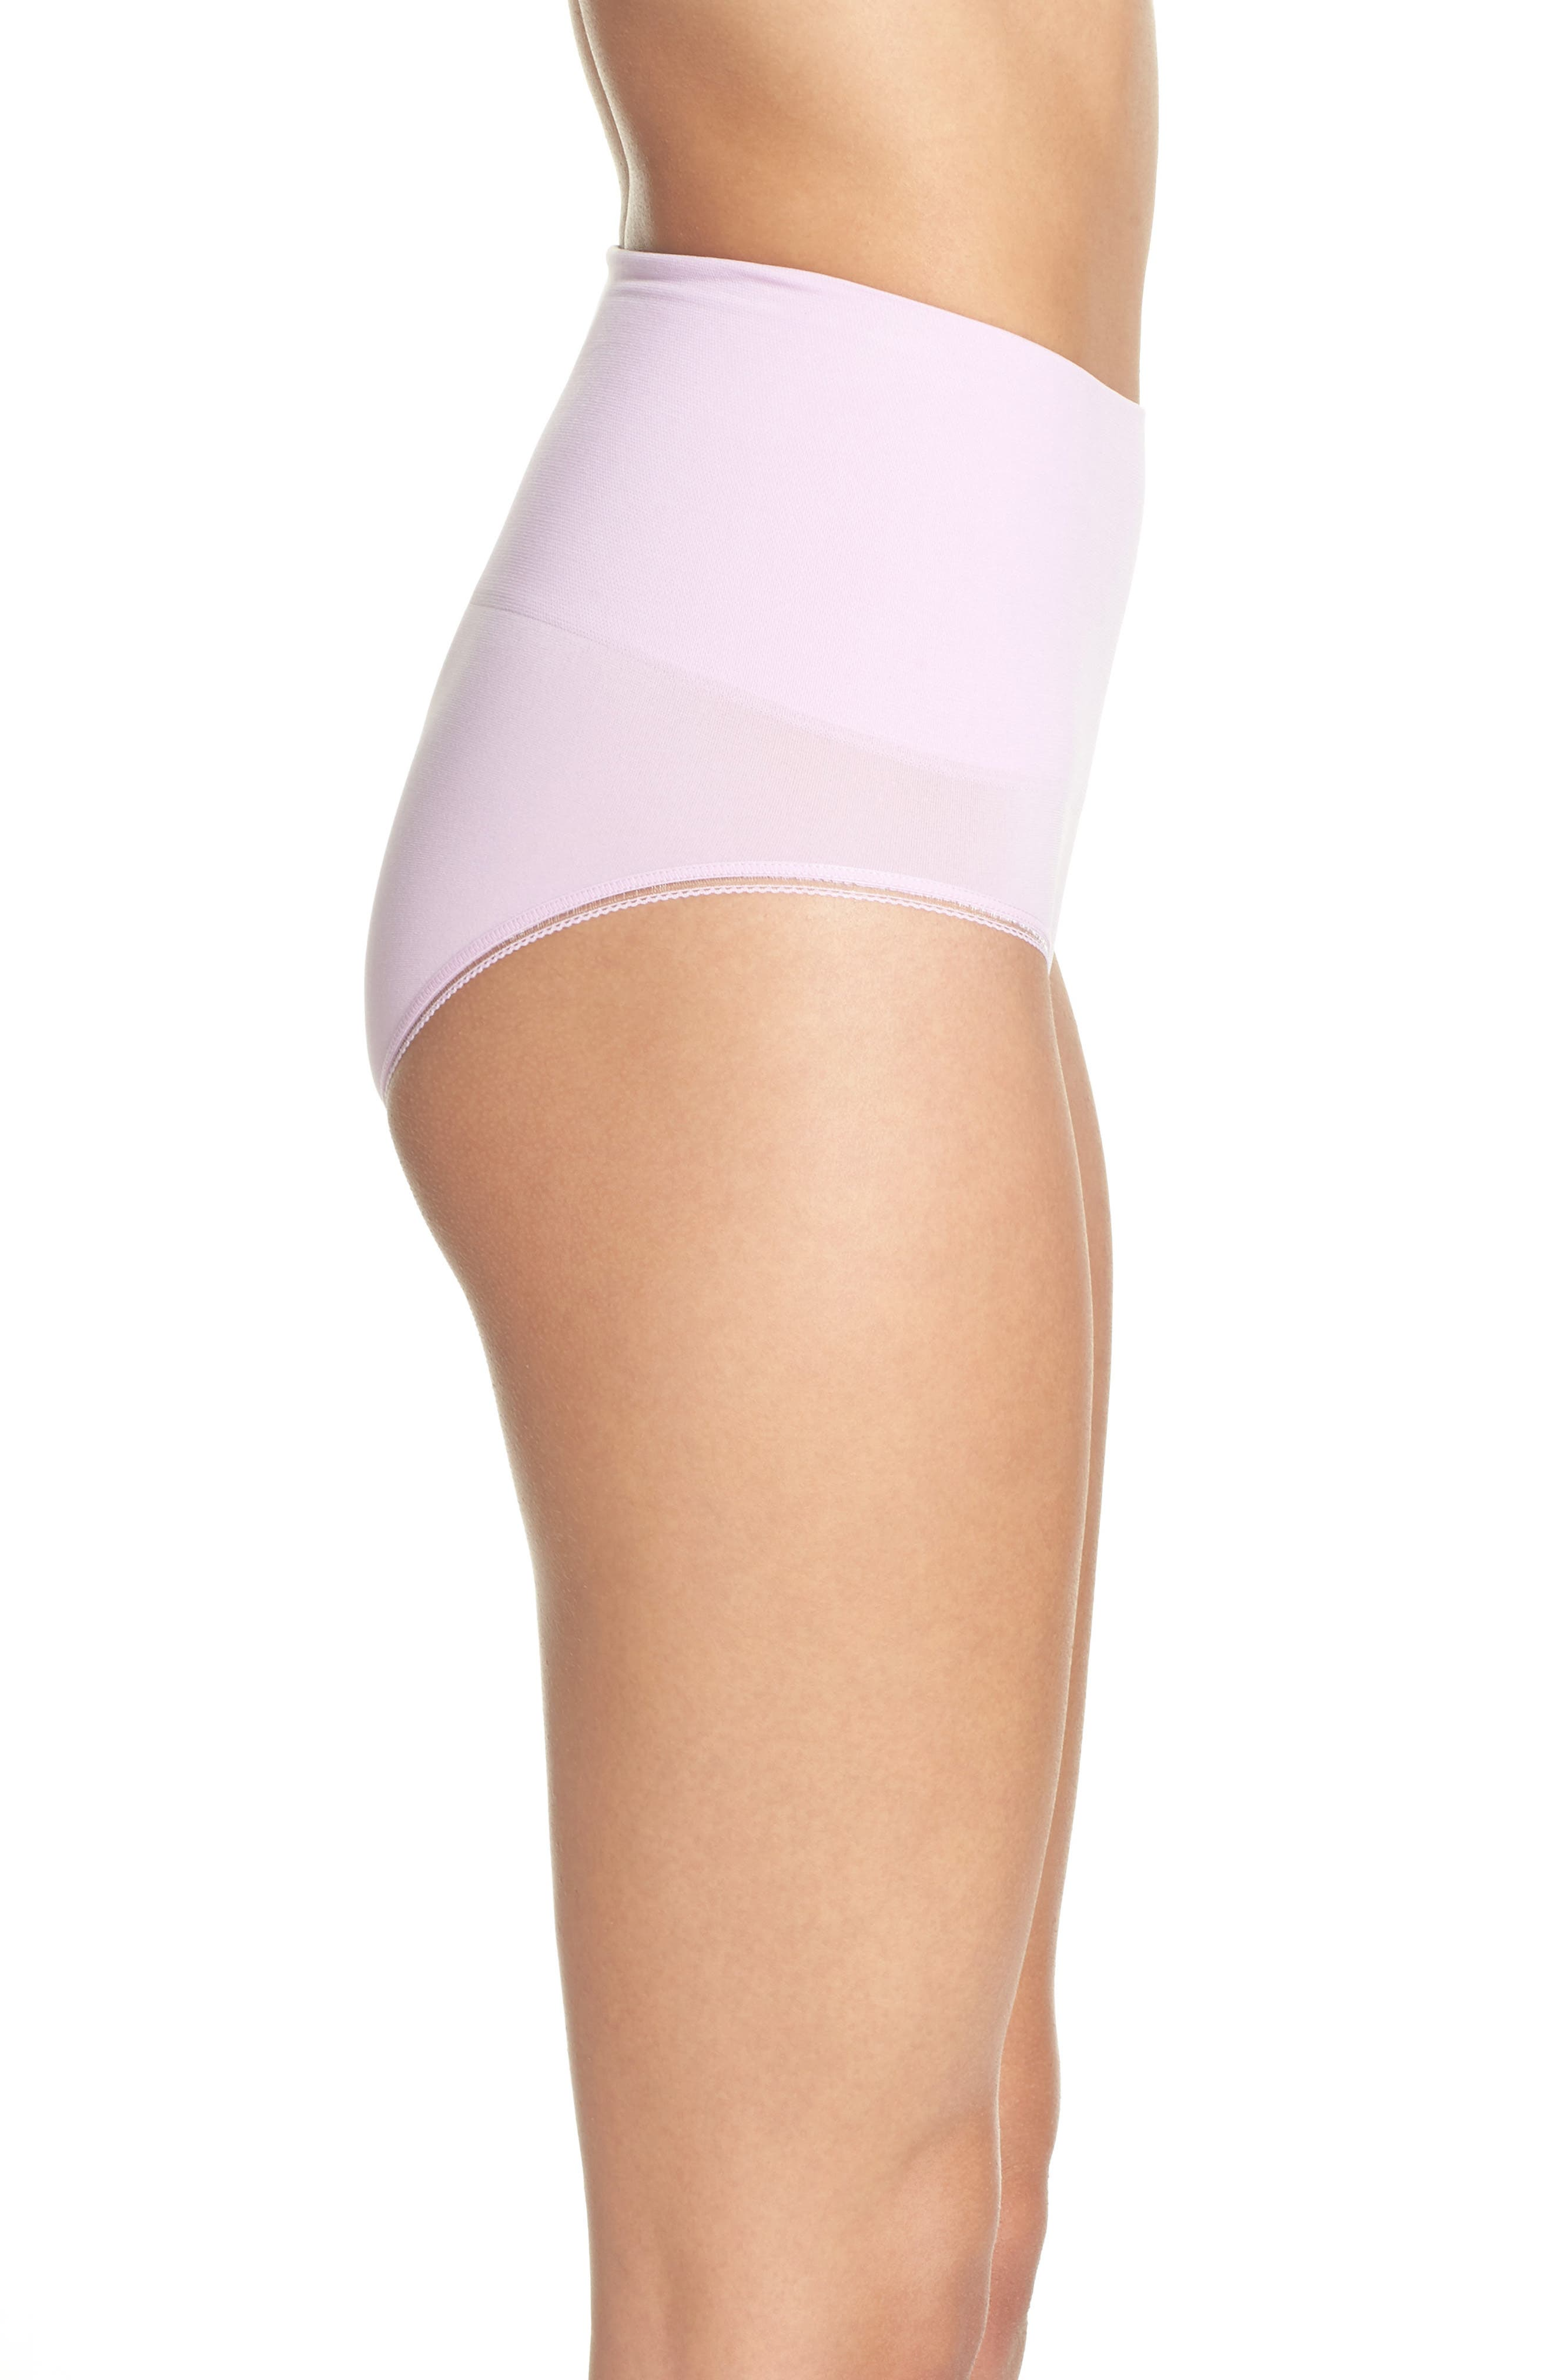 Alternate Image 3  - Yummie Ultralight Seamless Shaping Briefs (2 for $30)